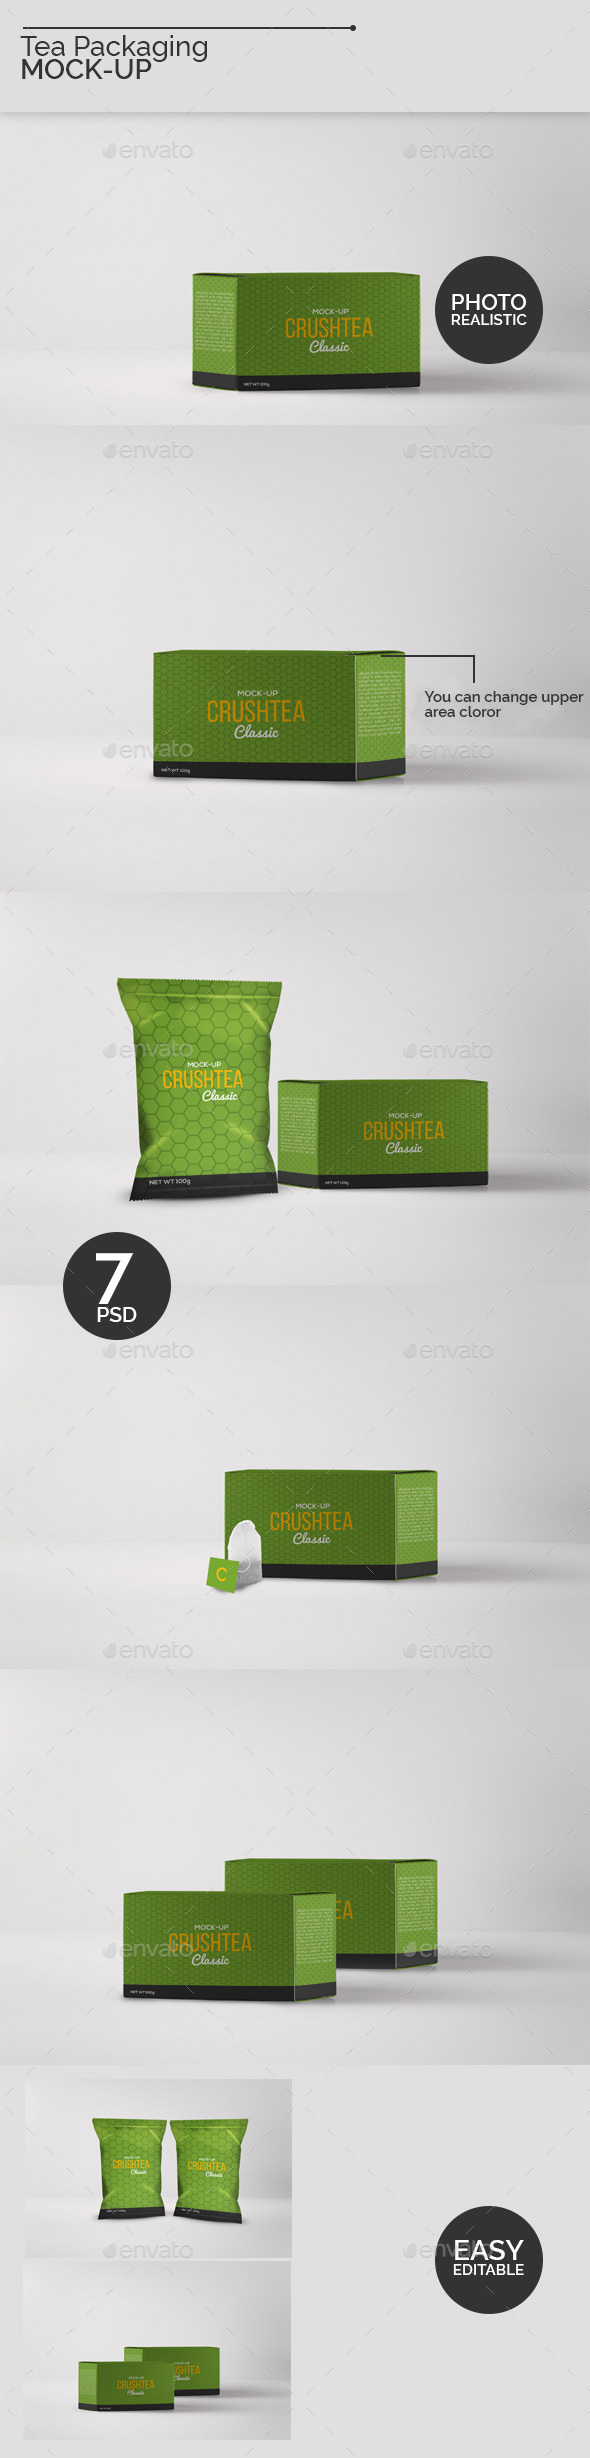 Tea Packaging Mock-Ups V2